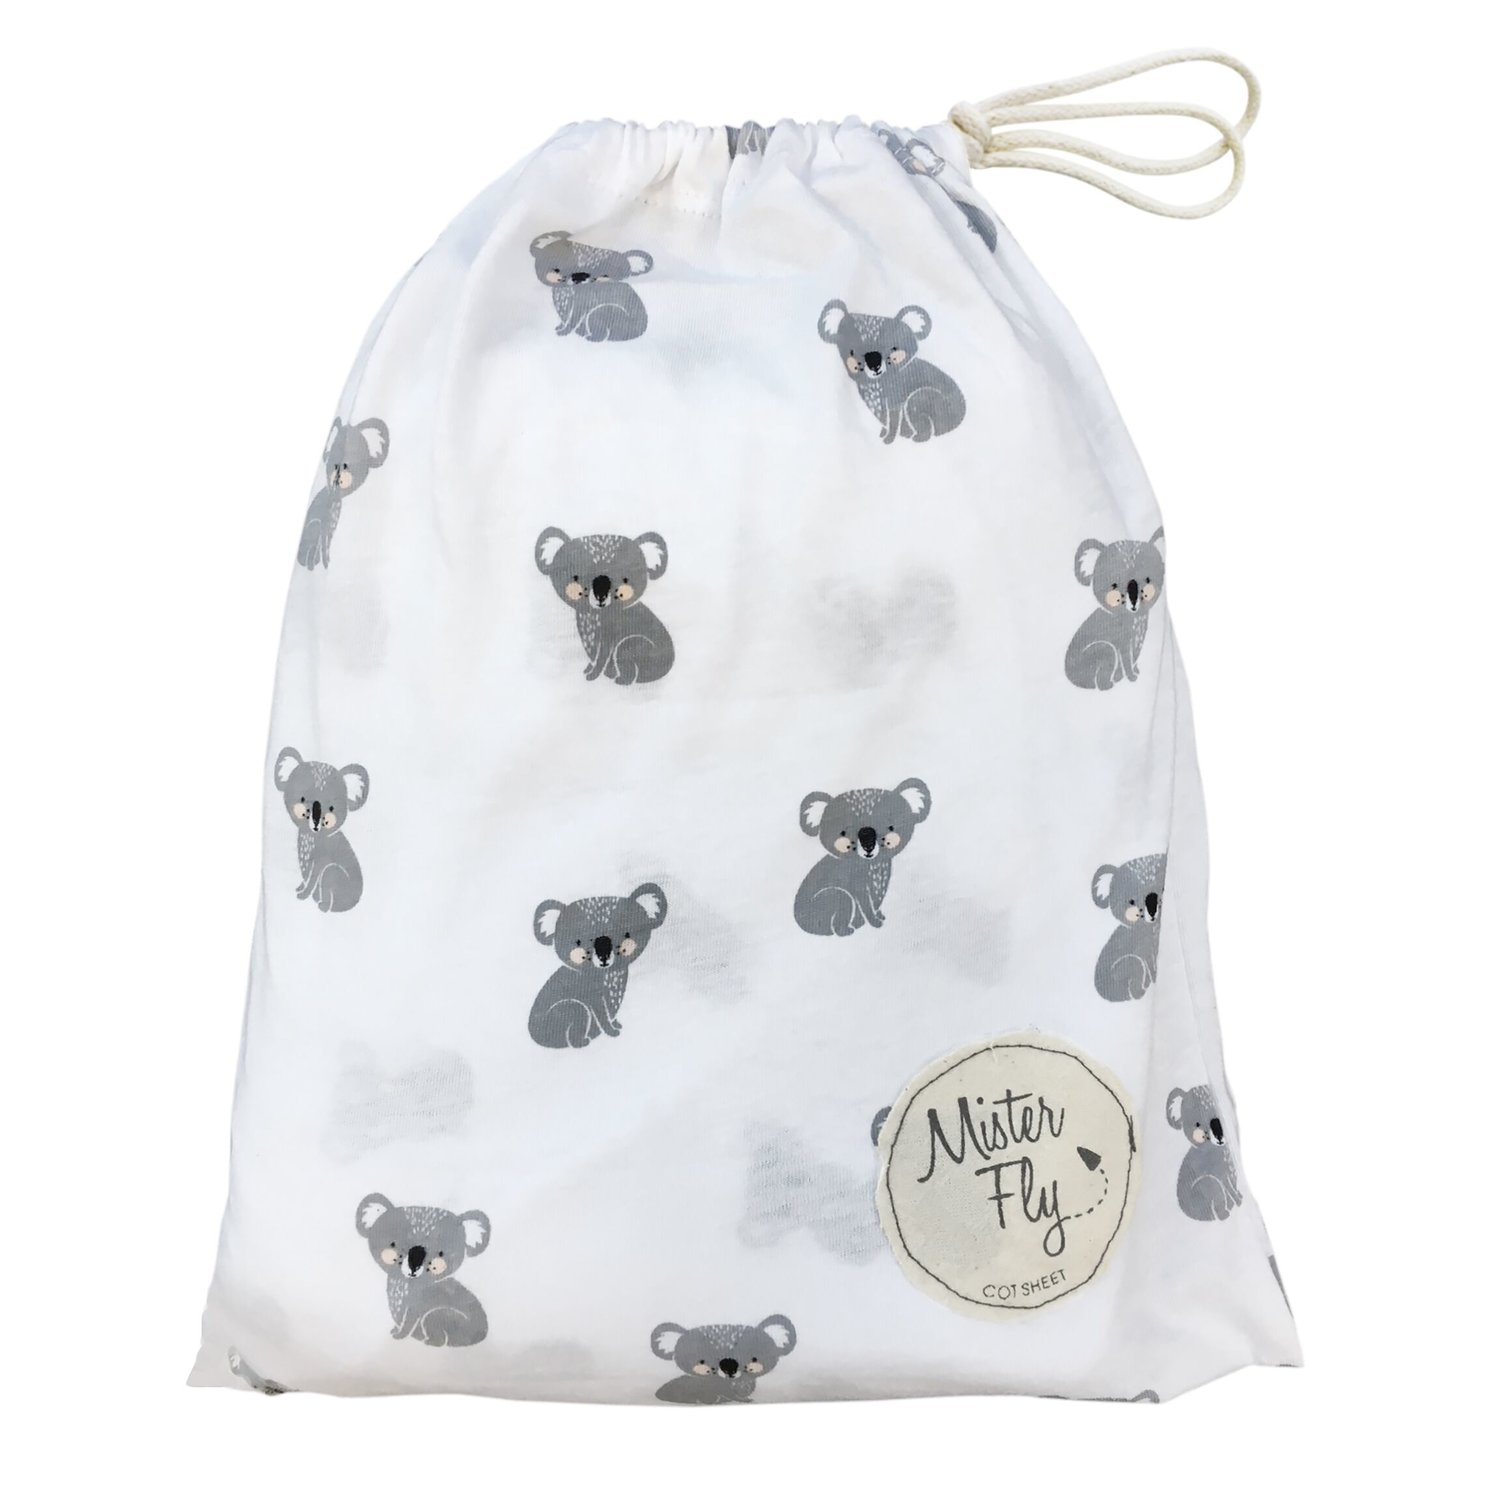 Mister Fly Koala Fitted Cot Sheet